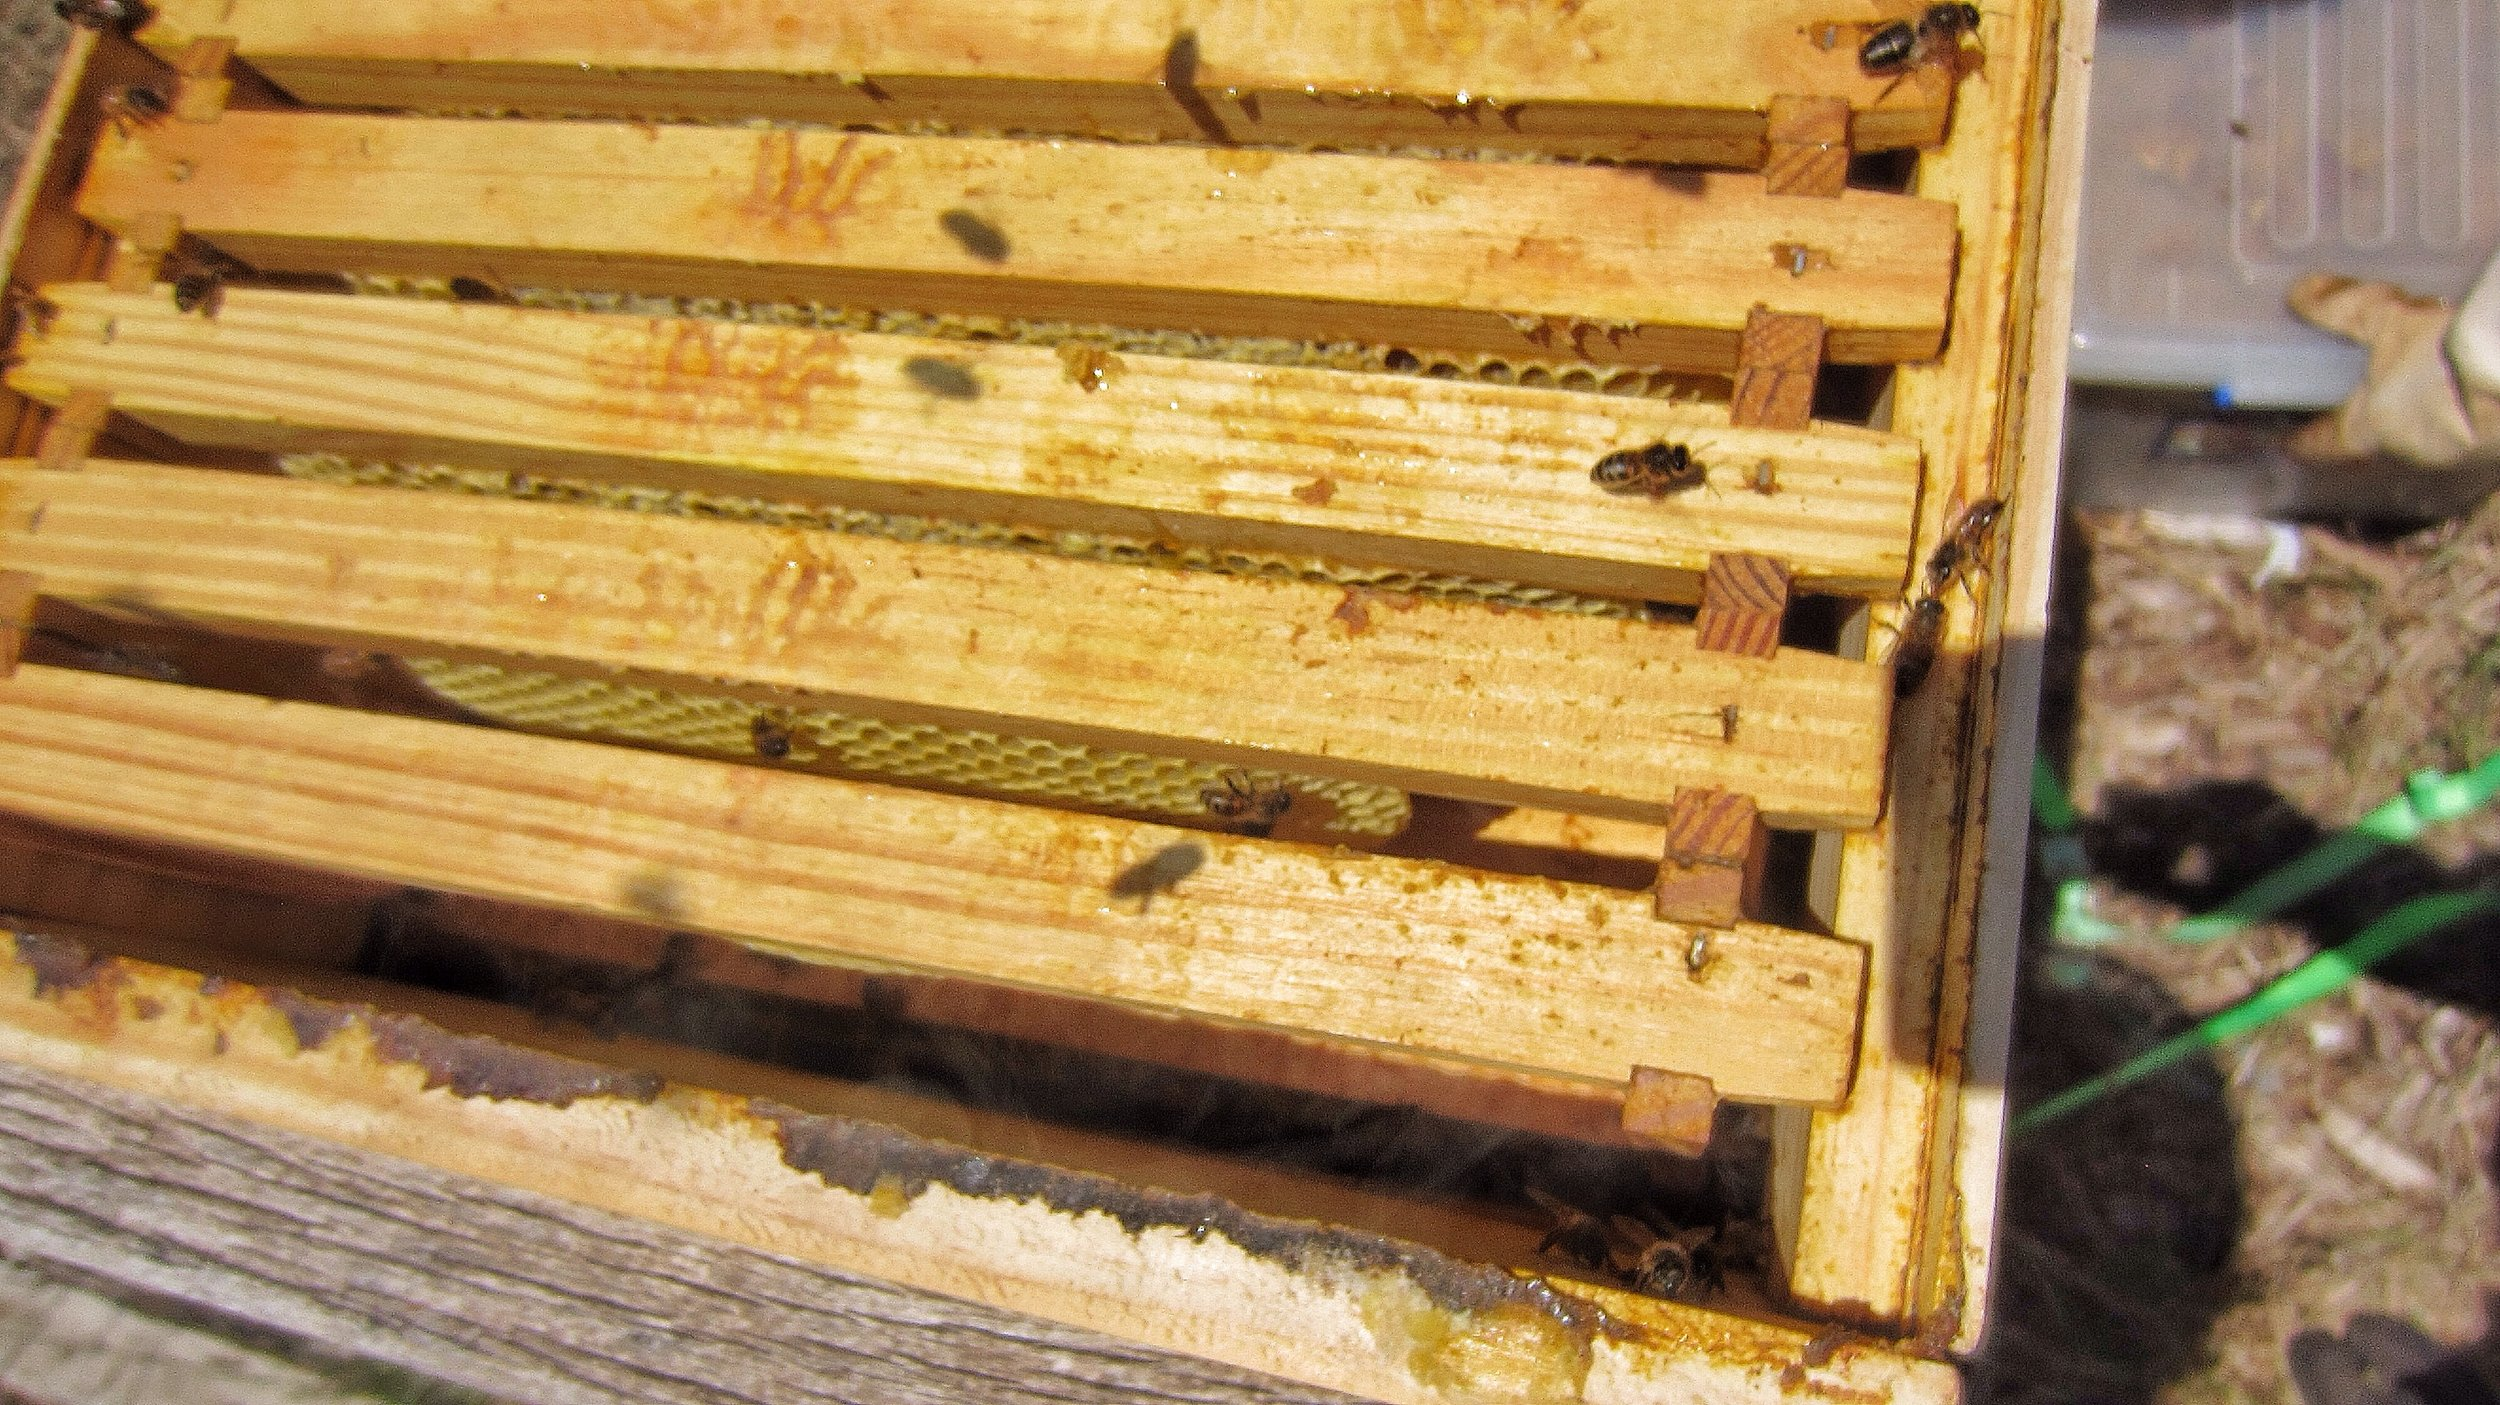 Honey bees build comb